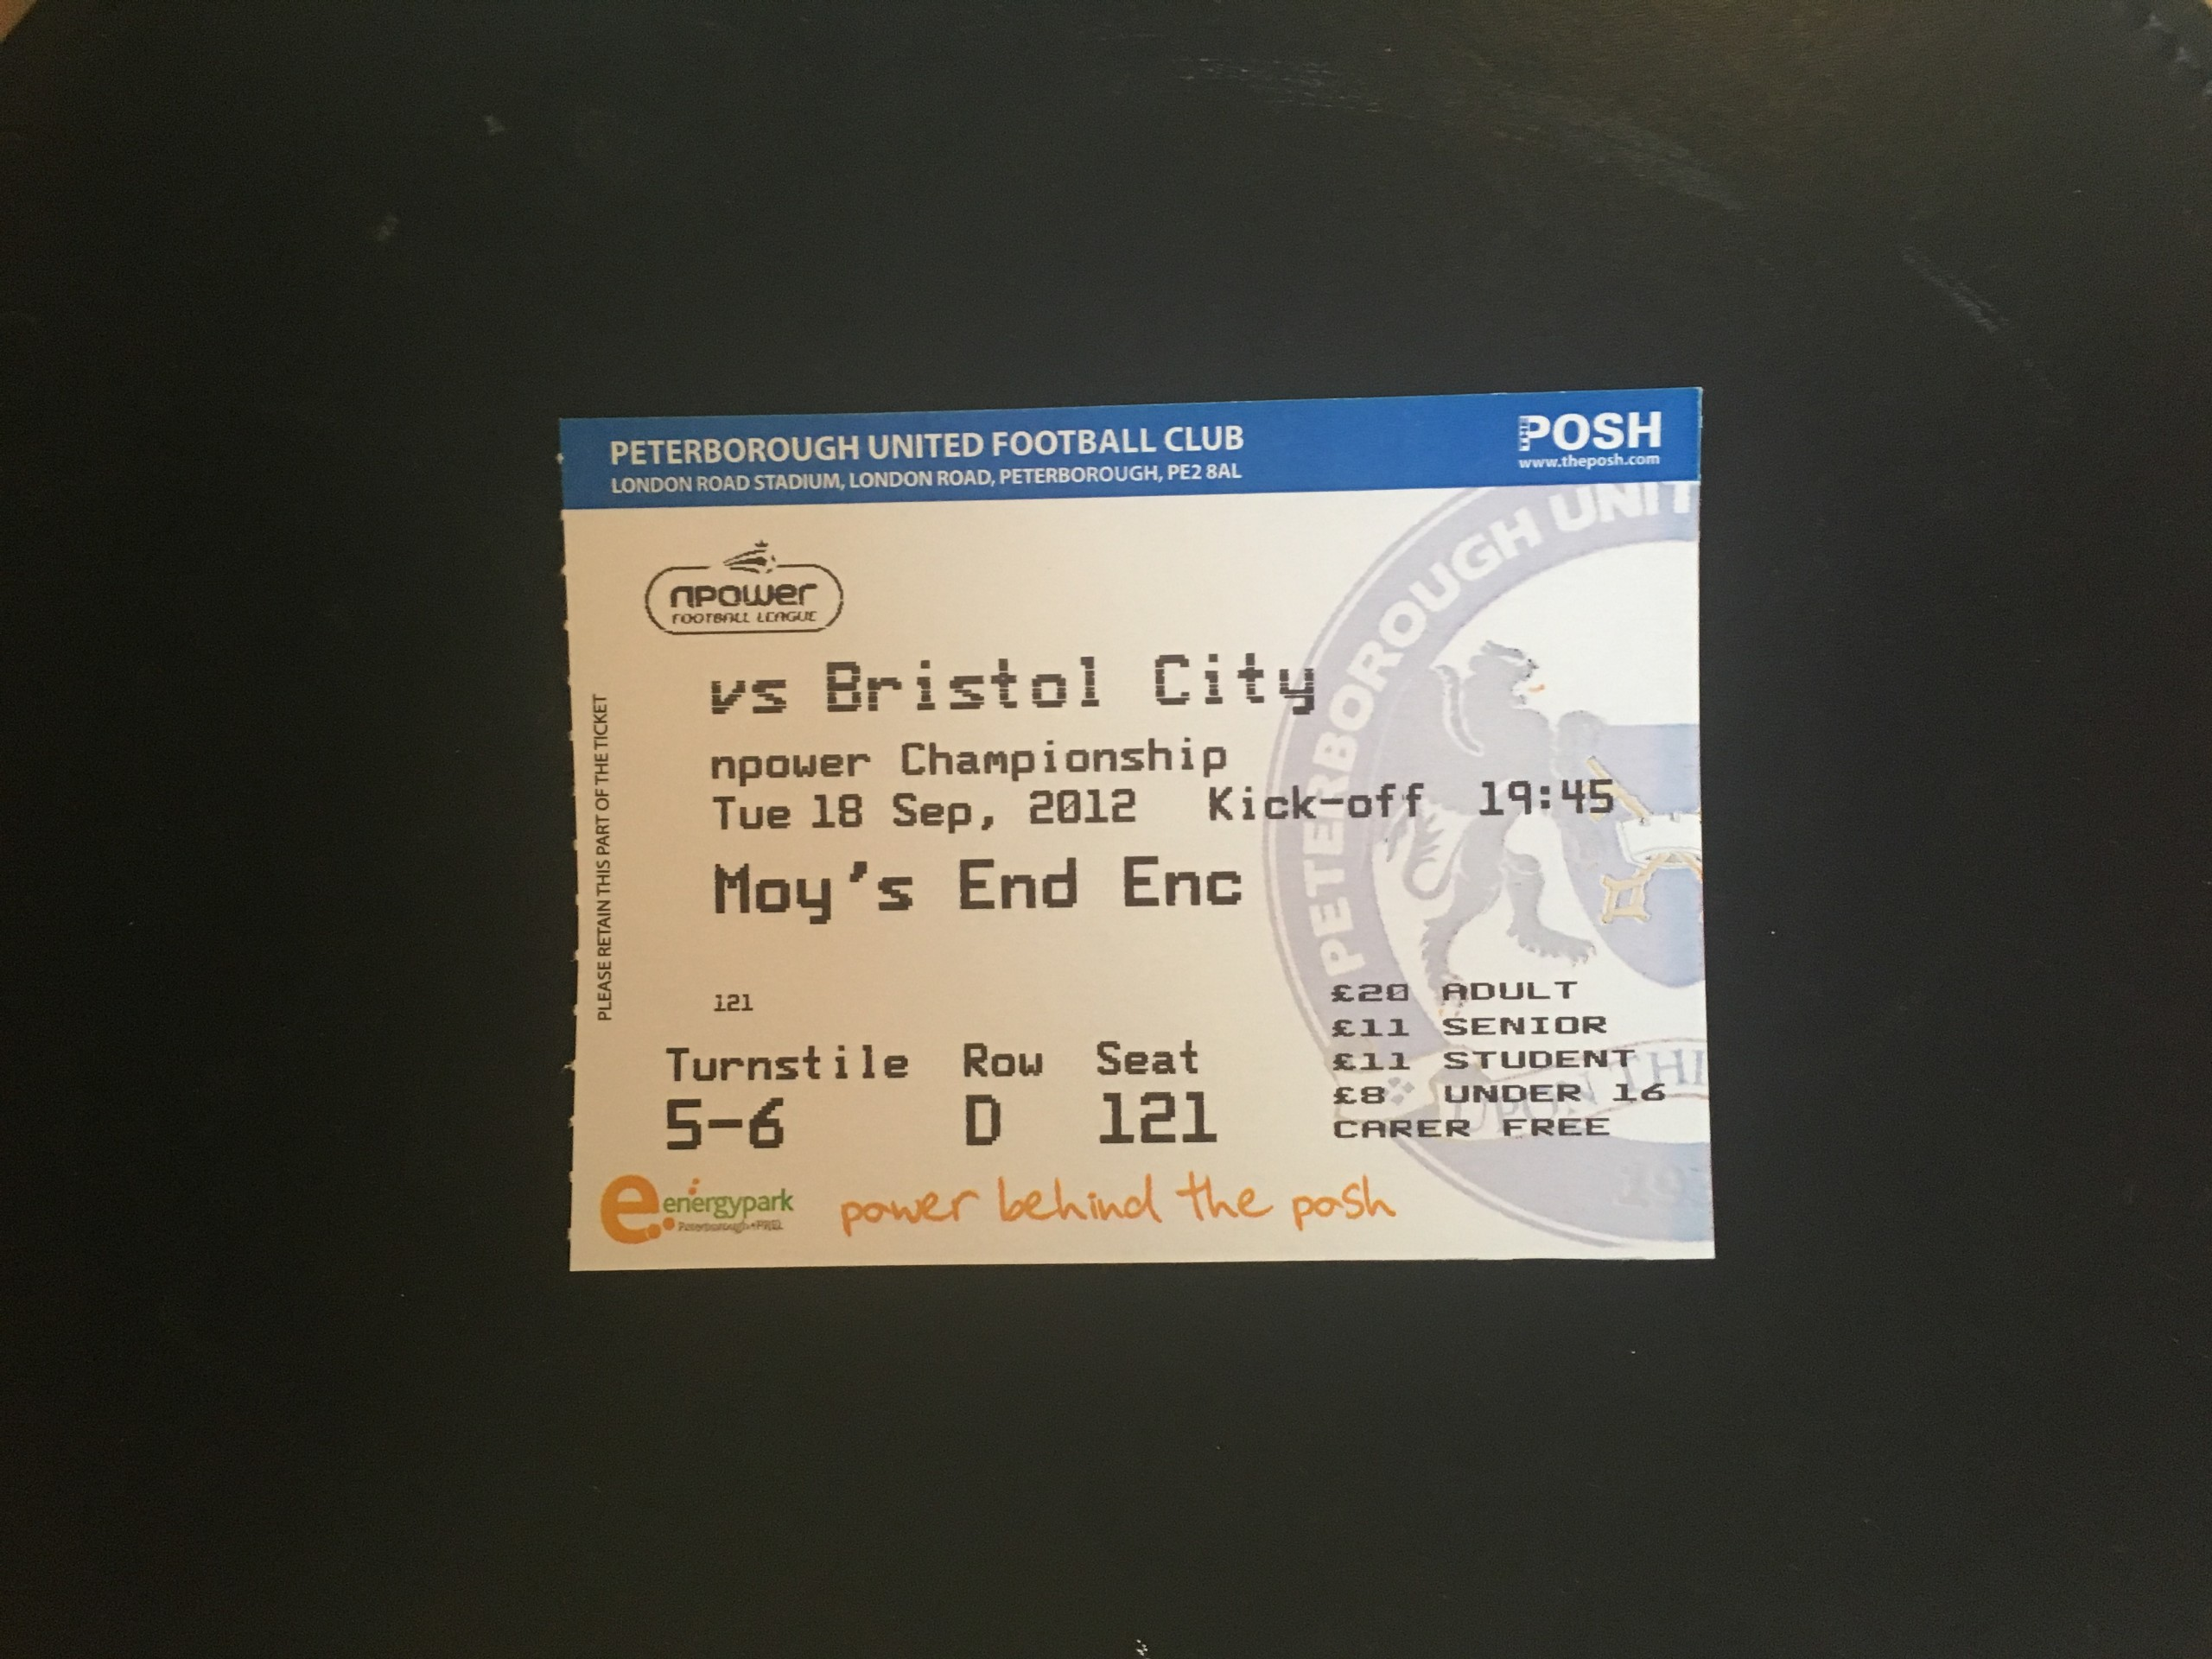 Peterborough United v Bristol City 18-09-12 Ticket